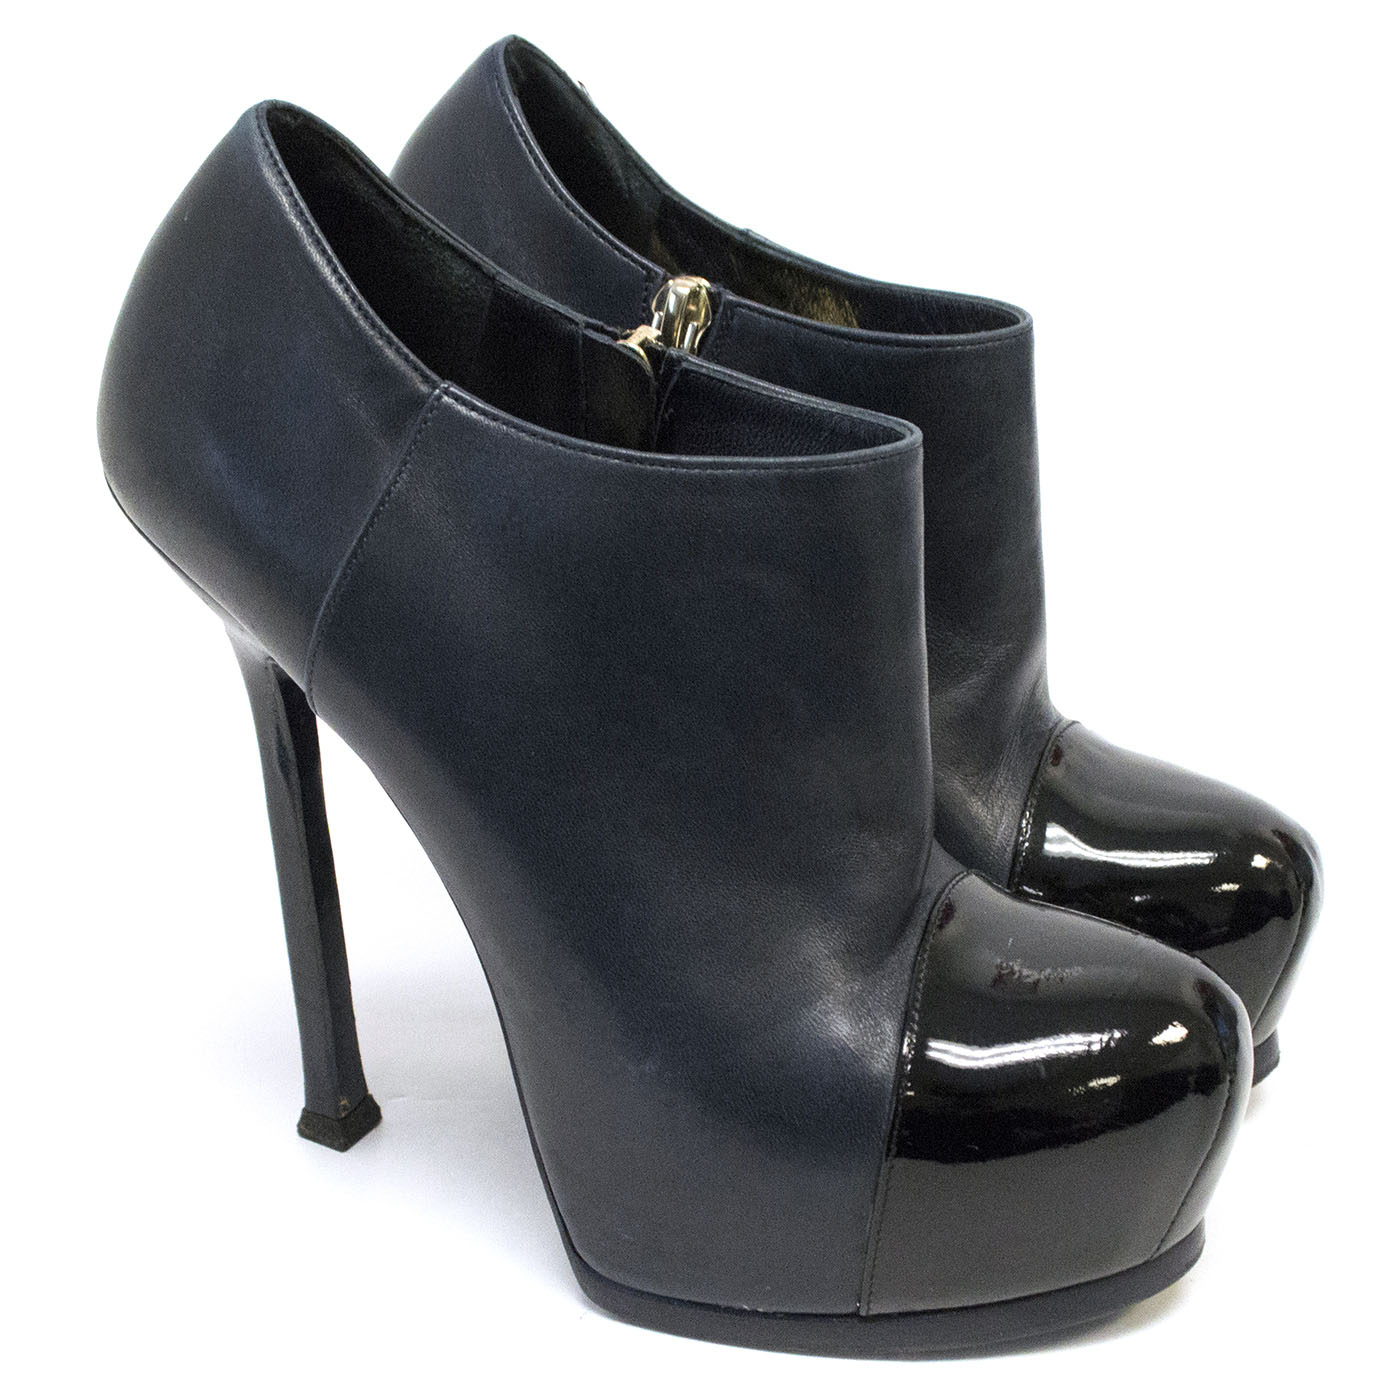 Yves Saint Laurent Tribtoo ankle bootie